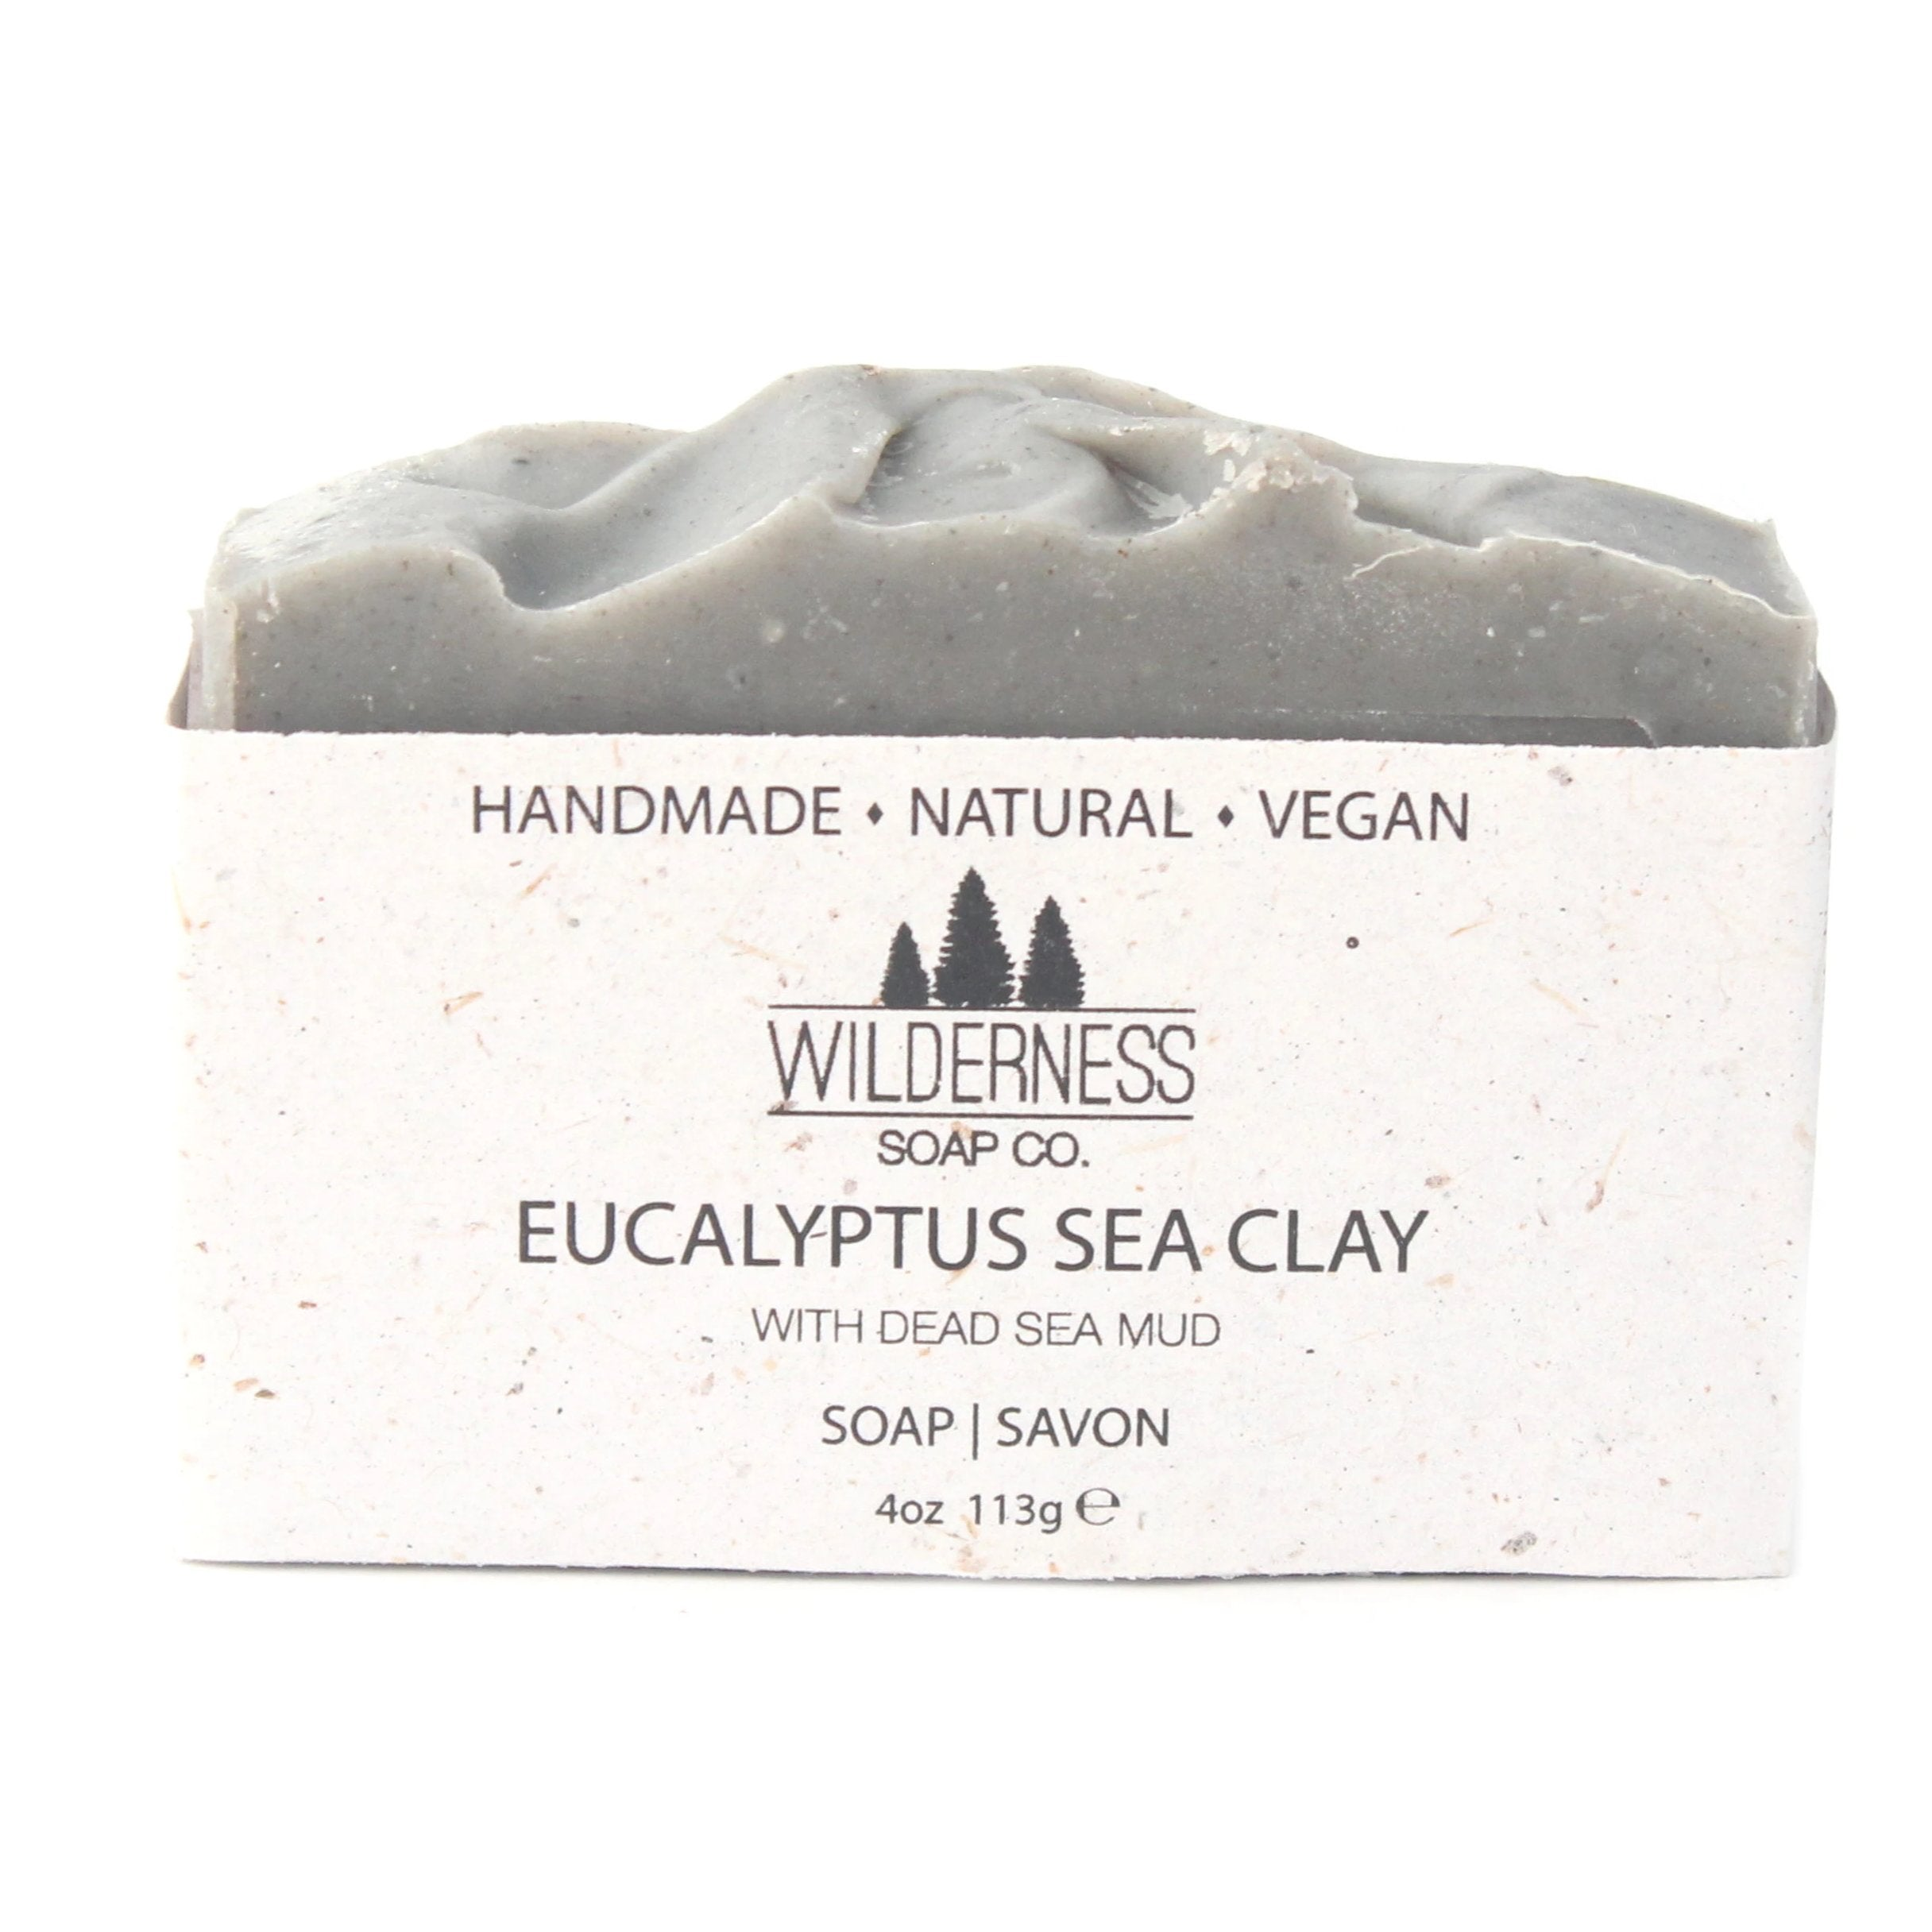 Canadian handmade natural vegan soap, made with eucalyptus and clay from the Dead Sea.